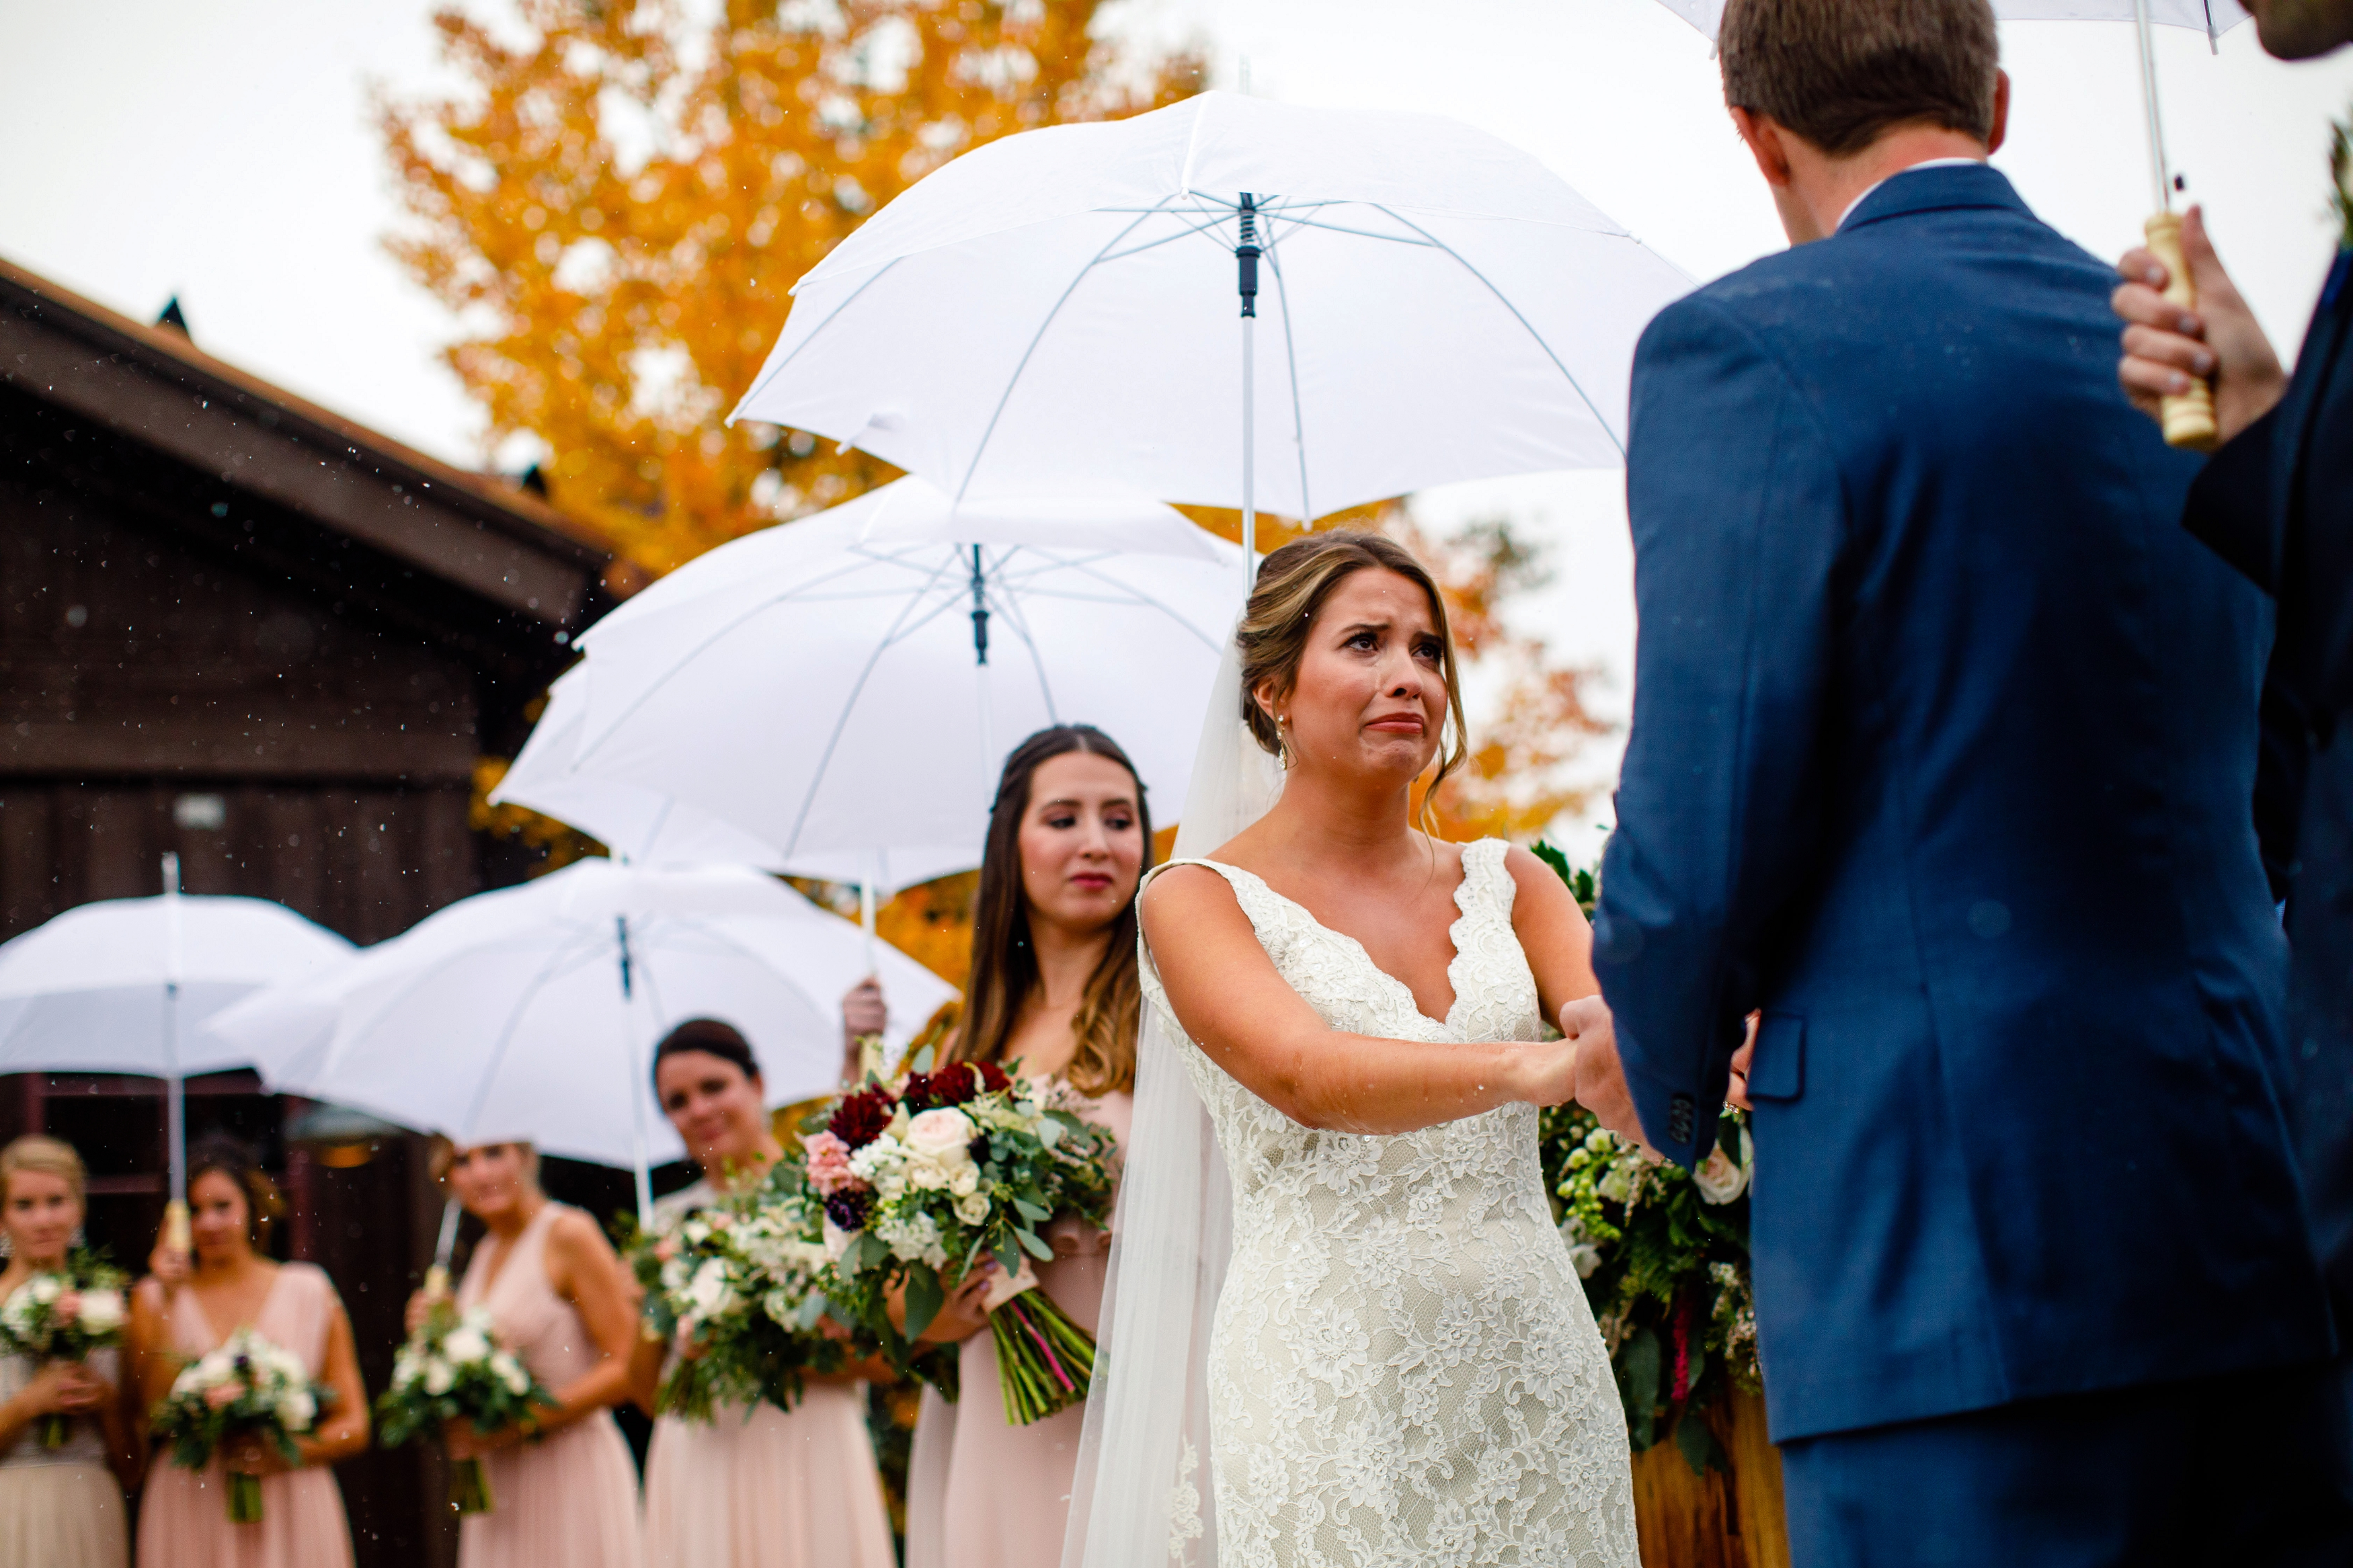 A bride cries during her ceremony at Tenmile Station in Breckenridge, CO.